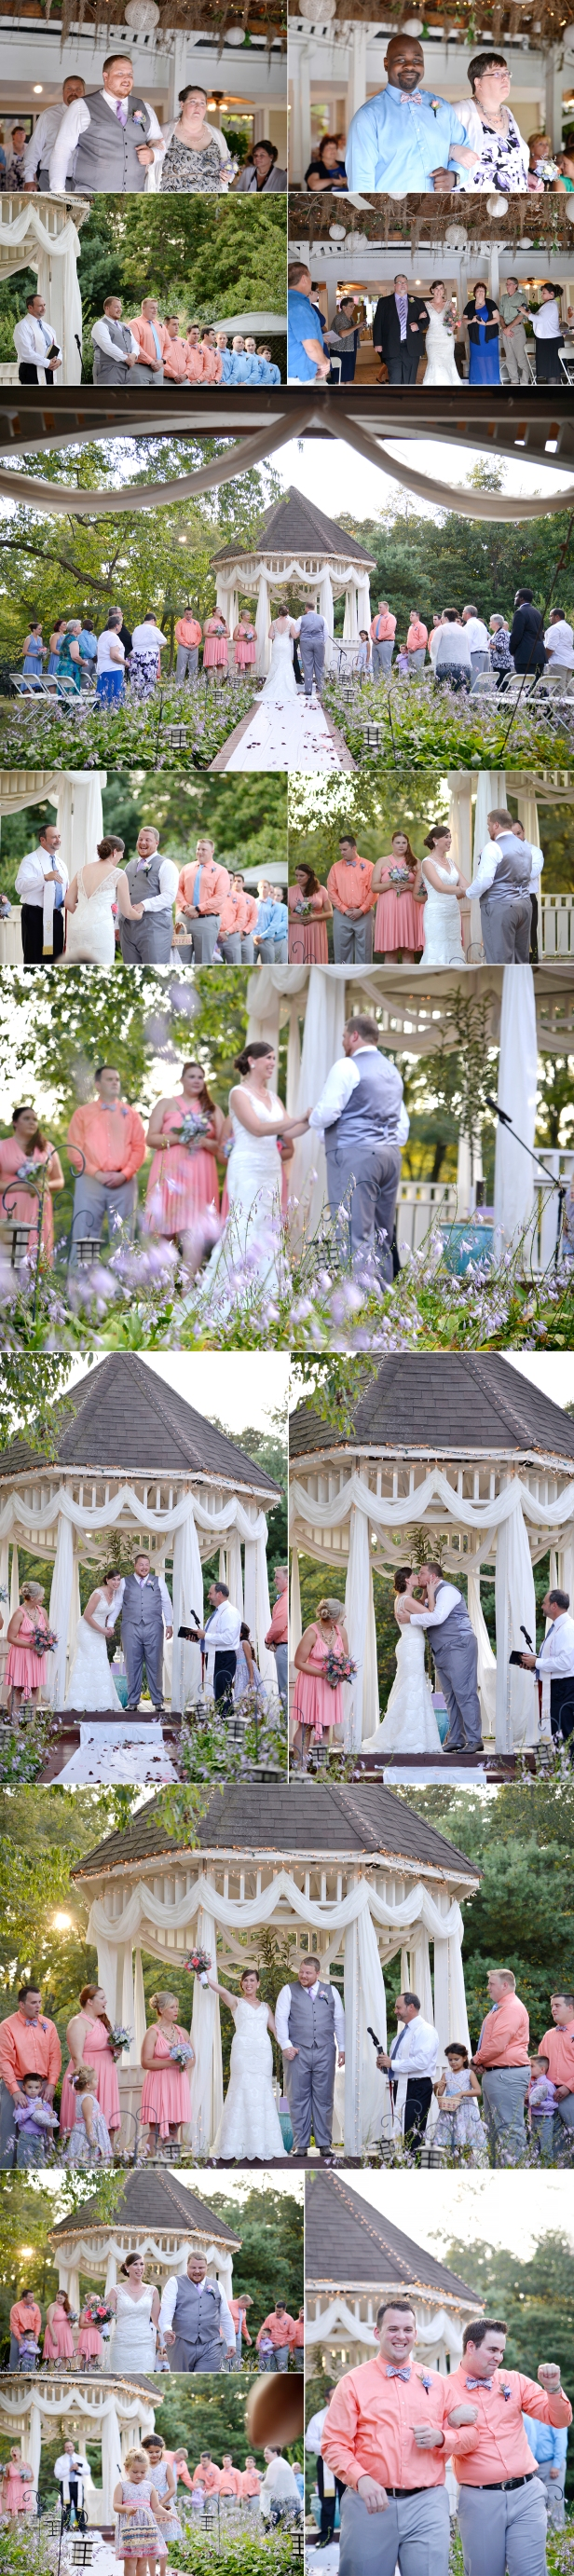 2 Cheers Chalet Wedding Photos Lancaster Ohio